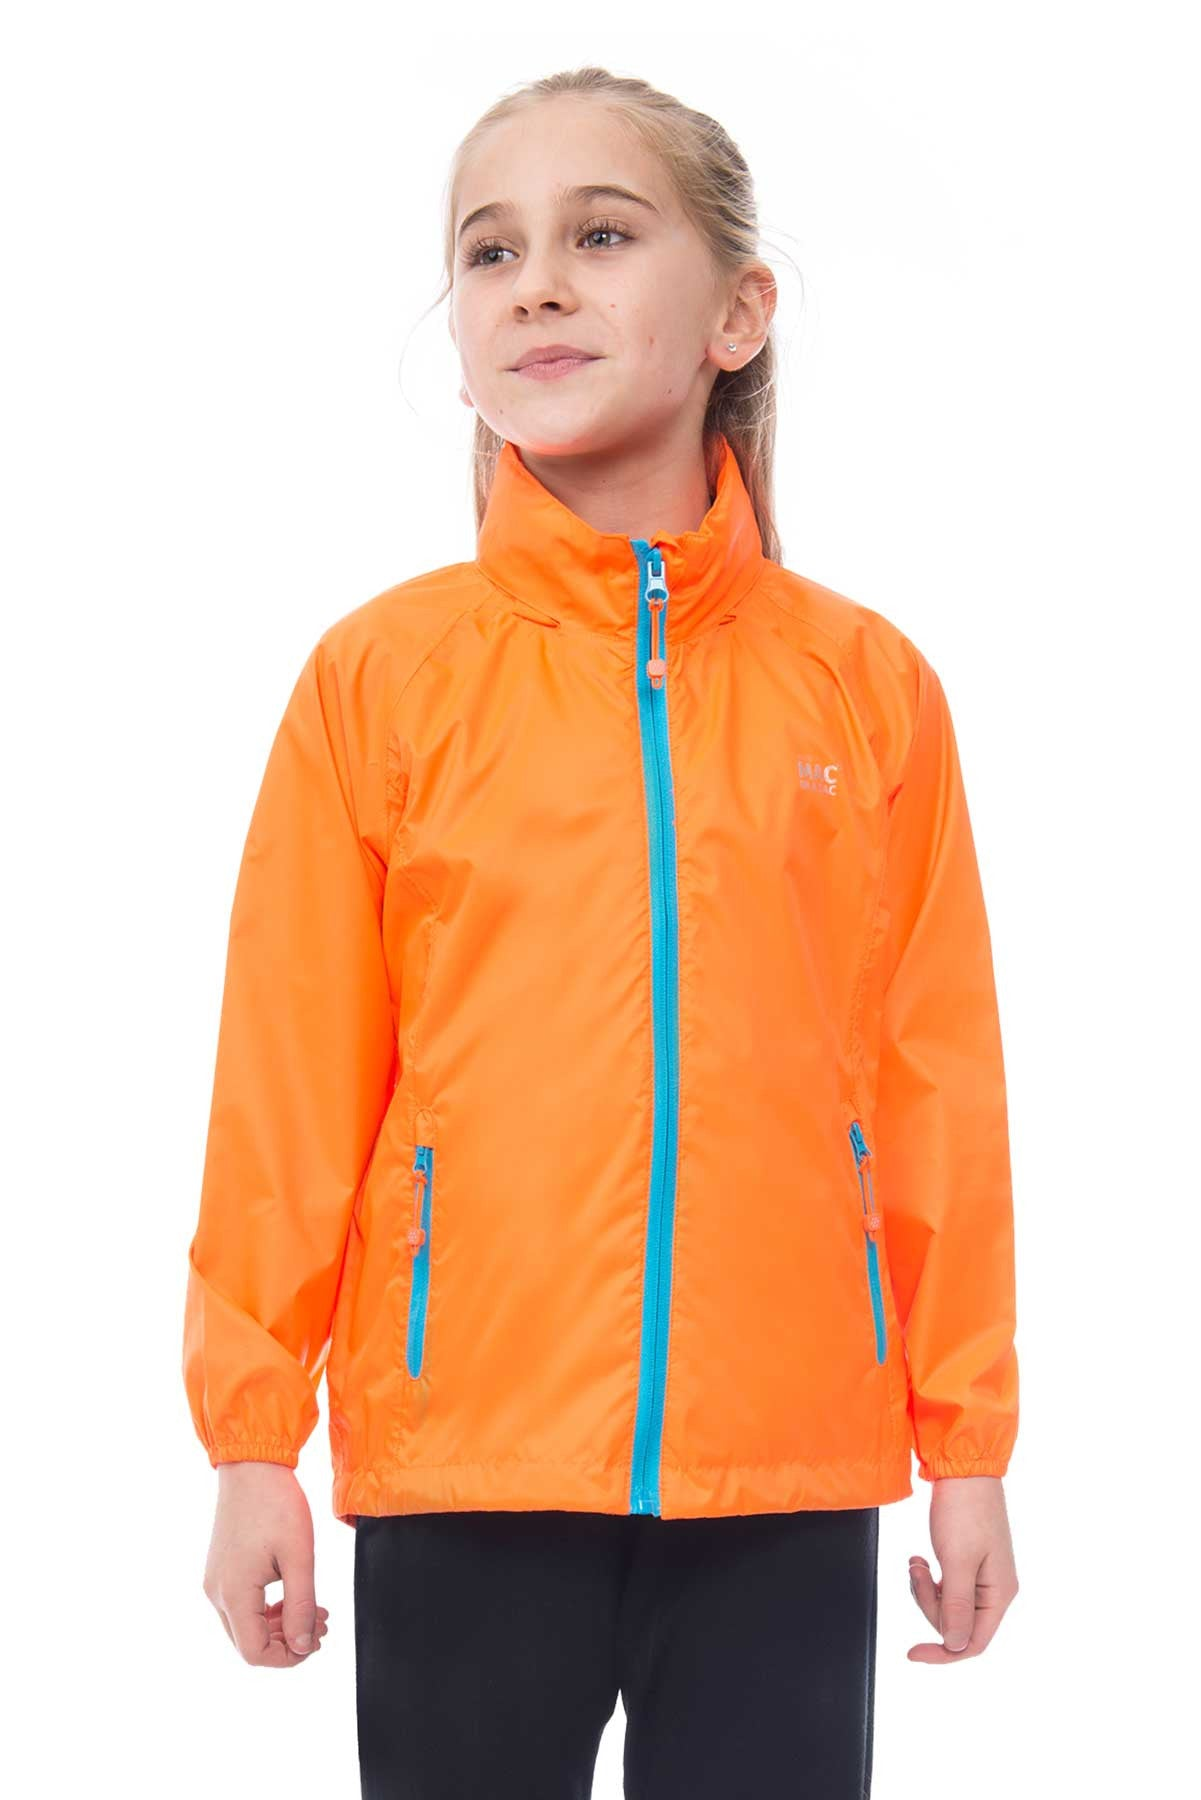 Mac in a Sac MINI Waterproof Packaway Jacket in Neon Orange